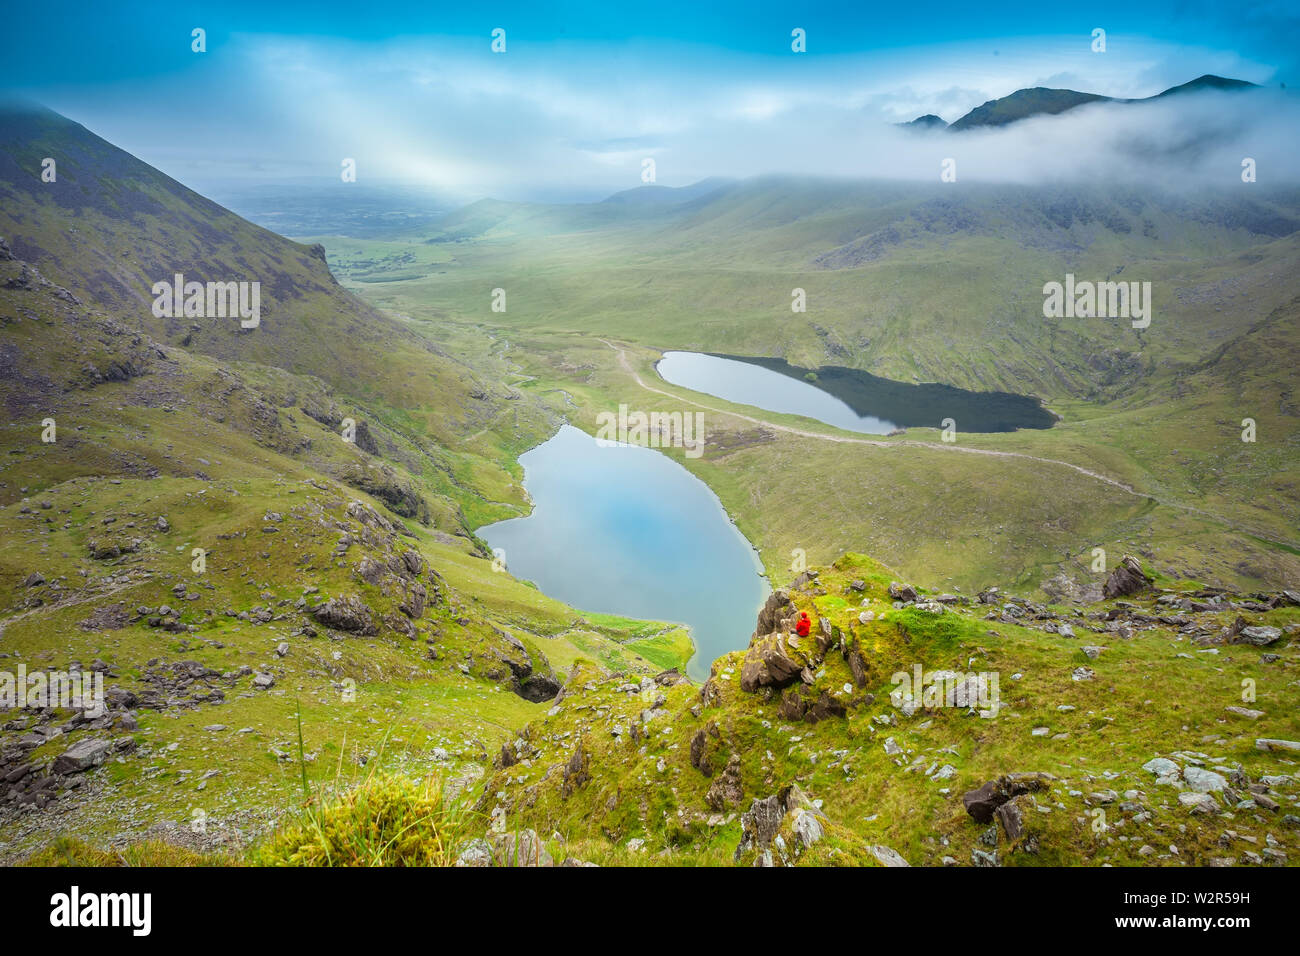 MacGillycuddy's Reeks, co. Kerry / Ireland : Spectacular landscape view from the the highest Irish mountains Stock Photo